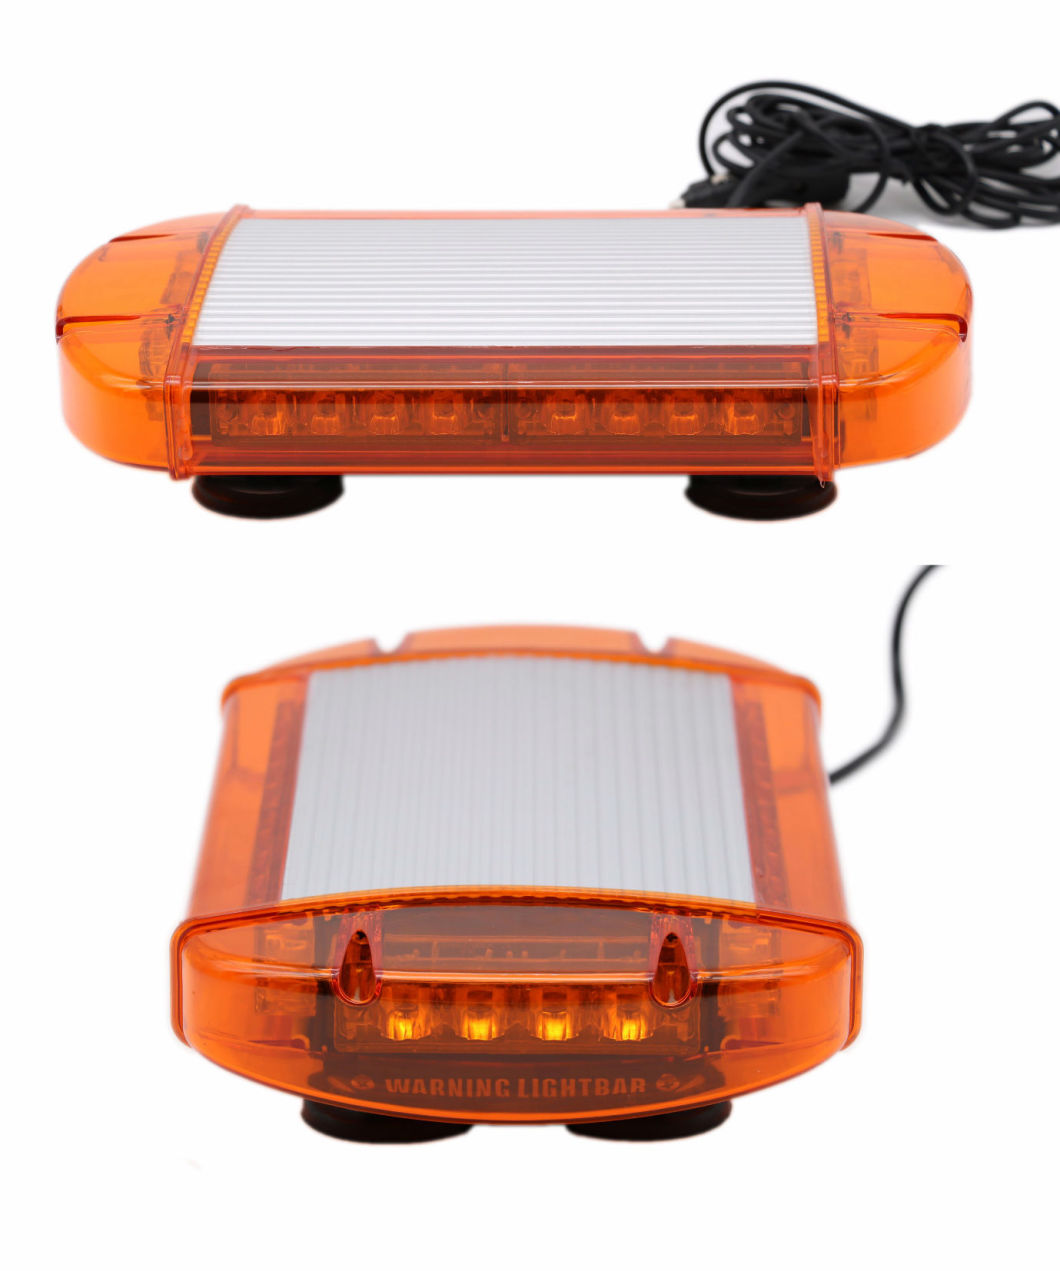 LED Mini Warinig Lightbar with Magnet Mouting Emergency Lamps